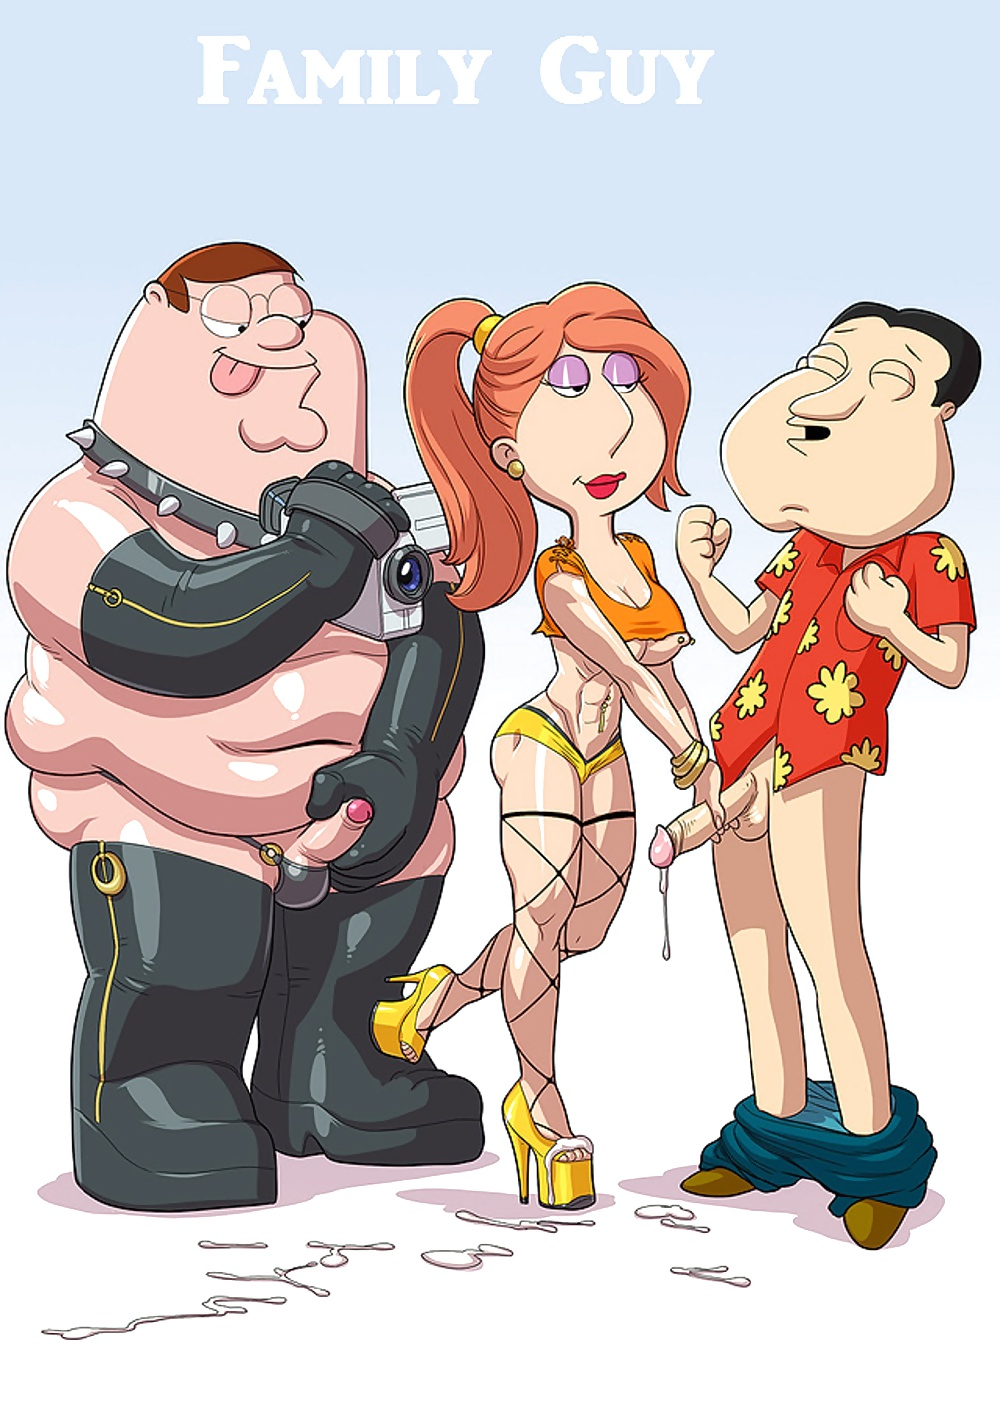 Famous Cartoons Doing Str8,Gay  Bisexual Acts - 399 Pics  Xhamster